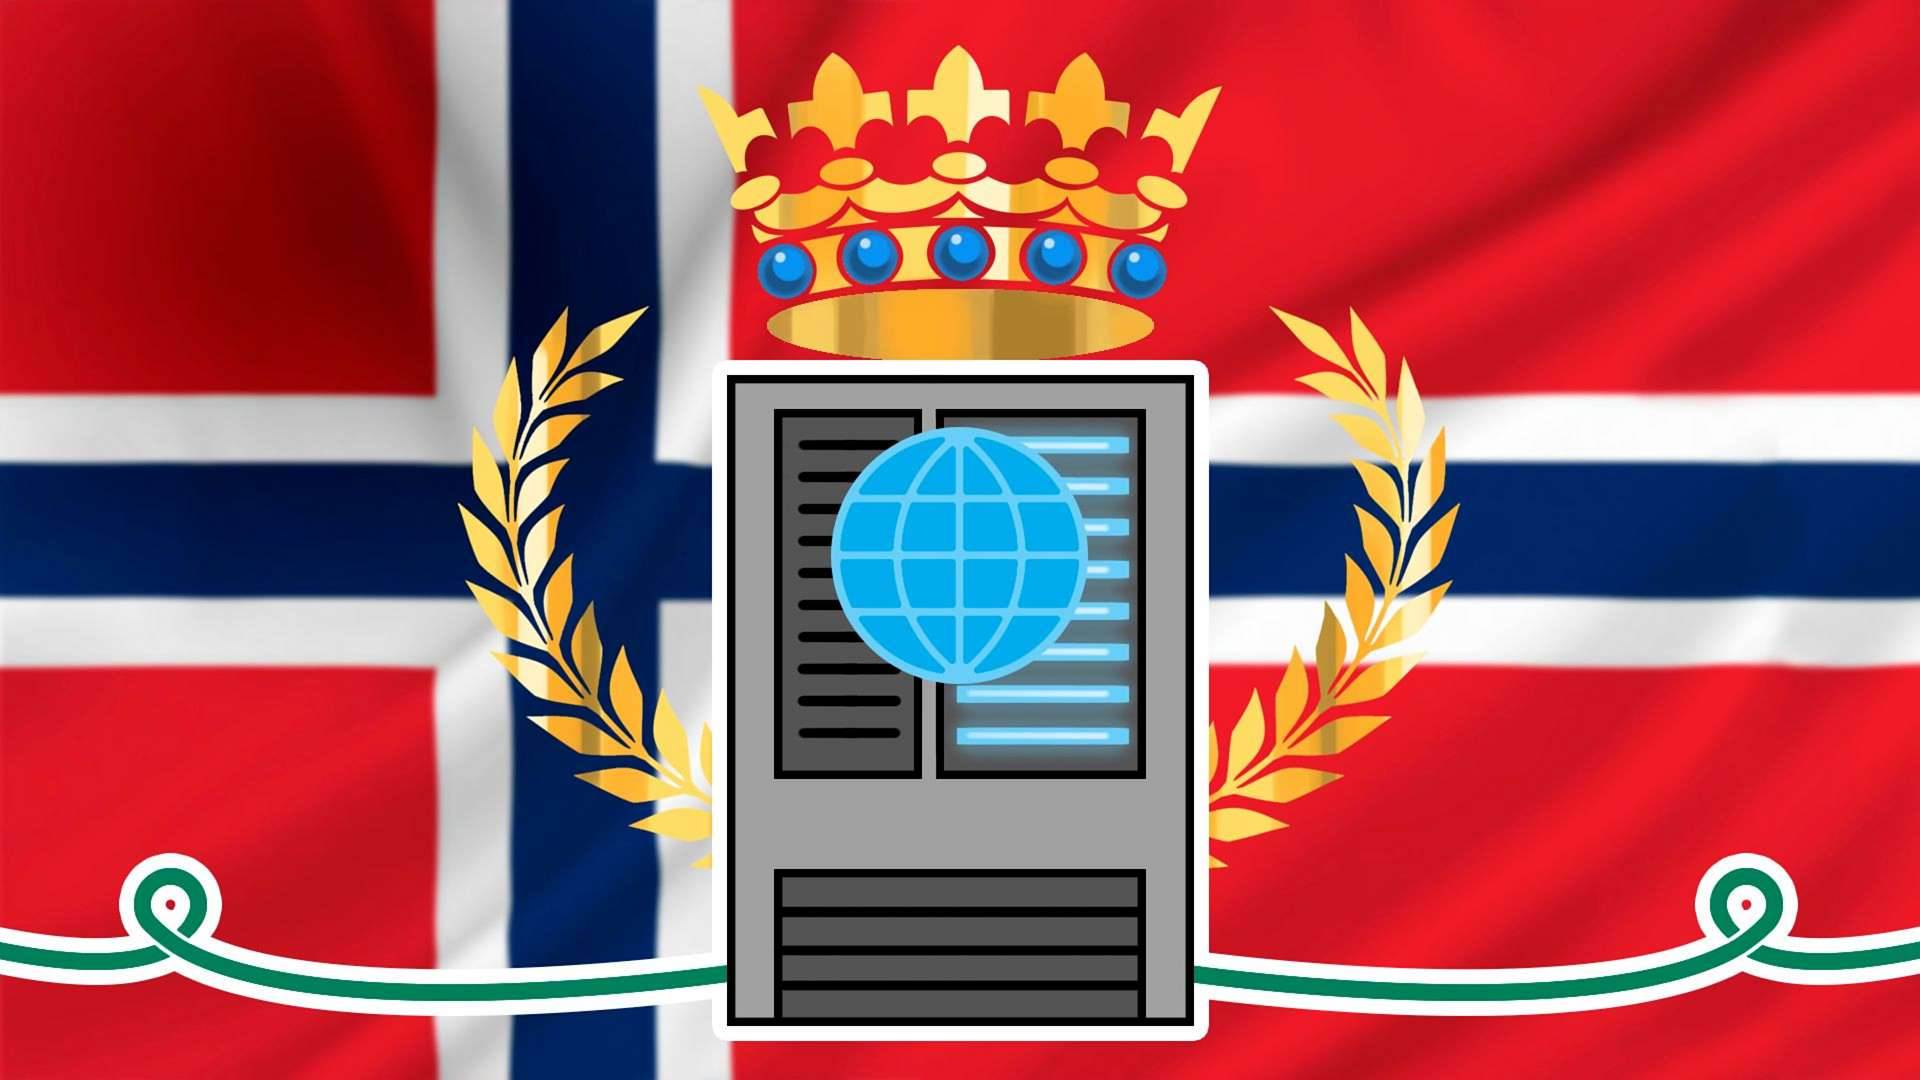 Norwegian government wants to make Norway the world leader in hosting services